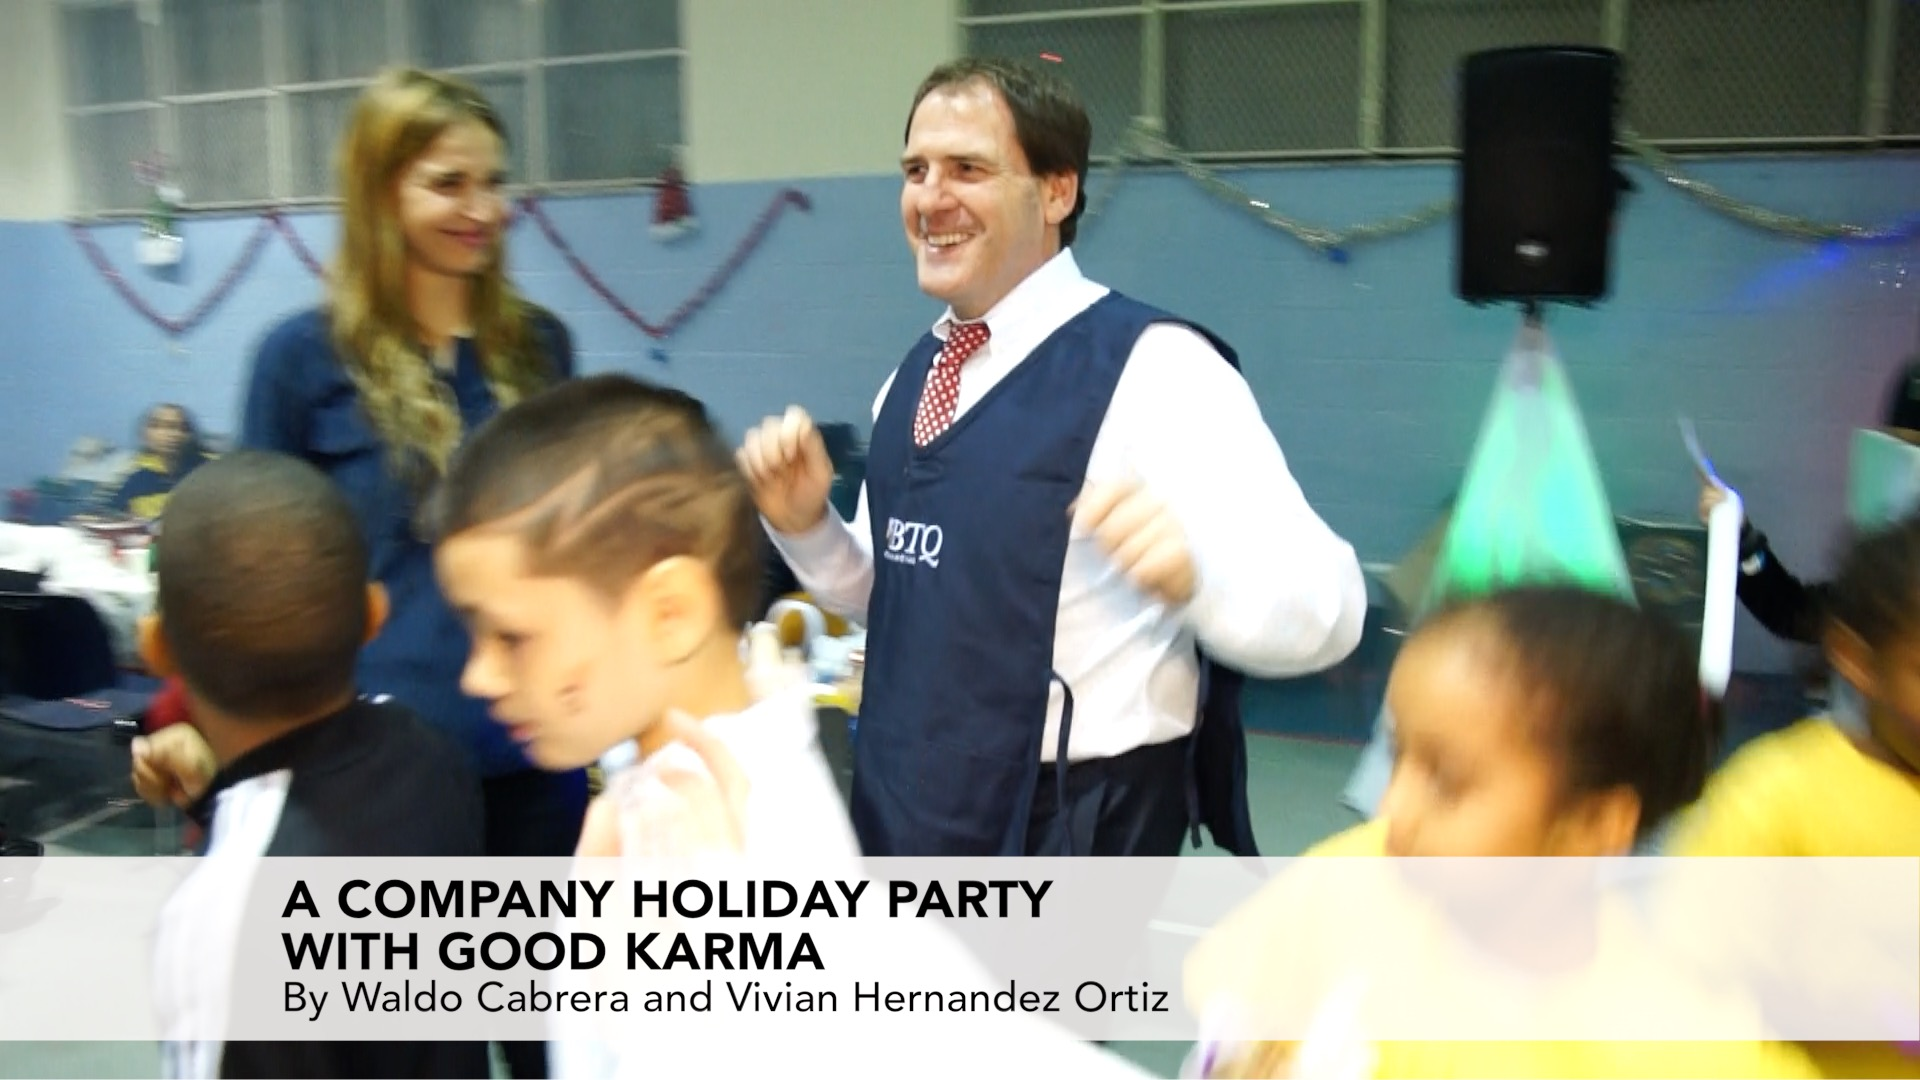 A Company Holiday Party with Good Karma